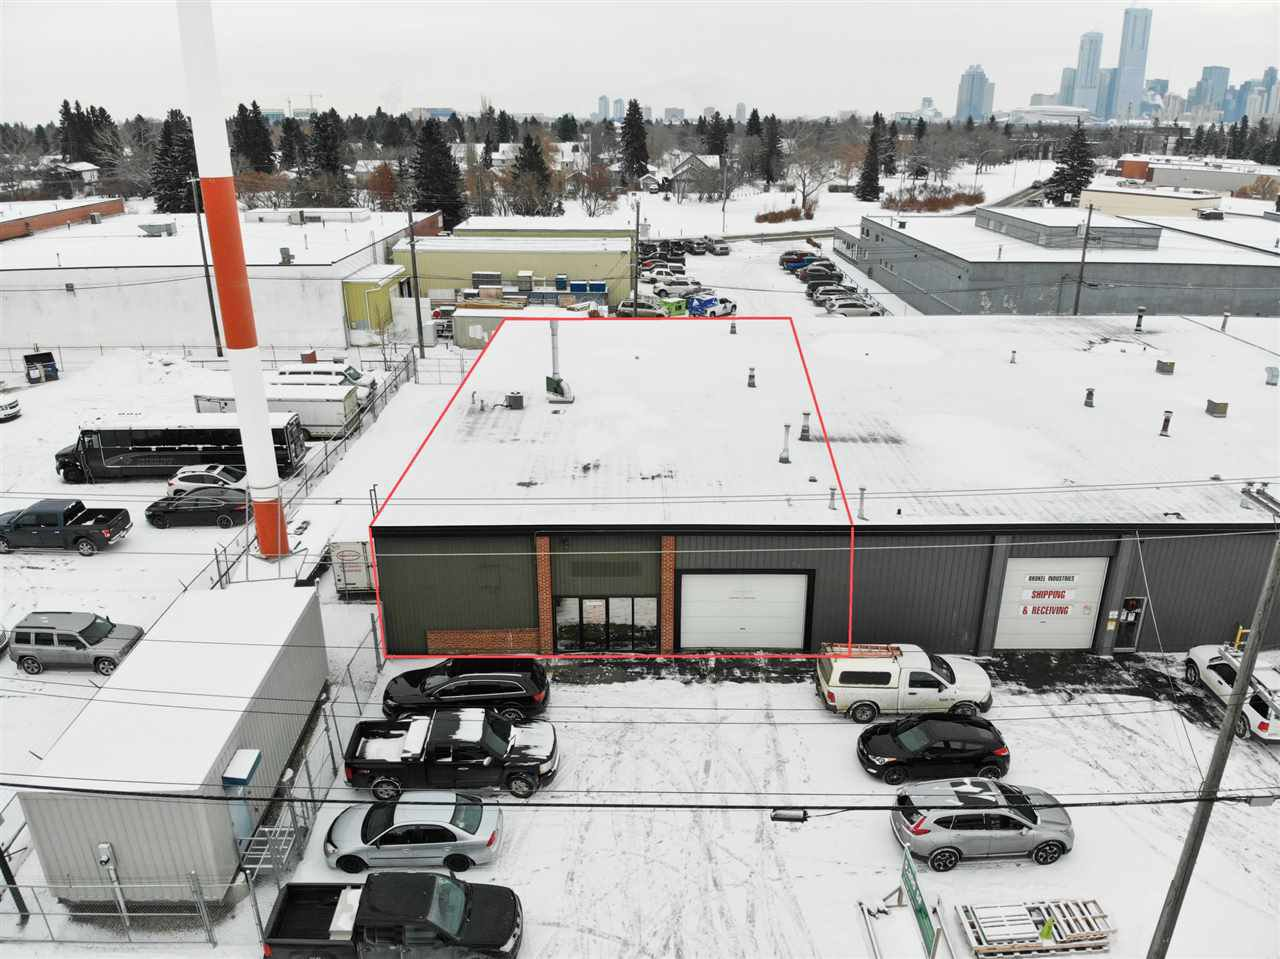 Main Photo: 10925 120 Street NW in Edmonton: Zone 08 Industrial for lease : MLS®# E4224041